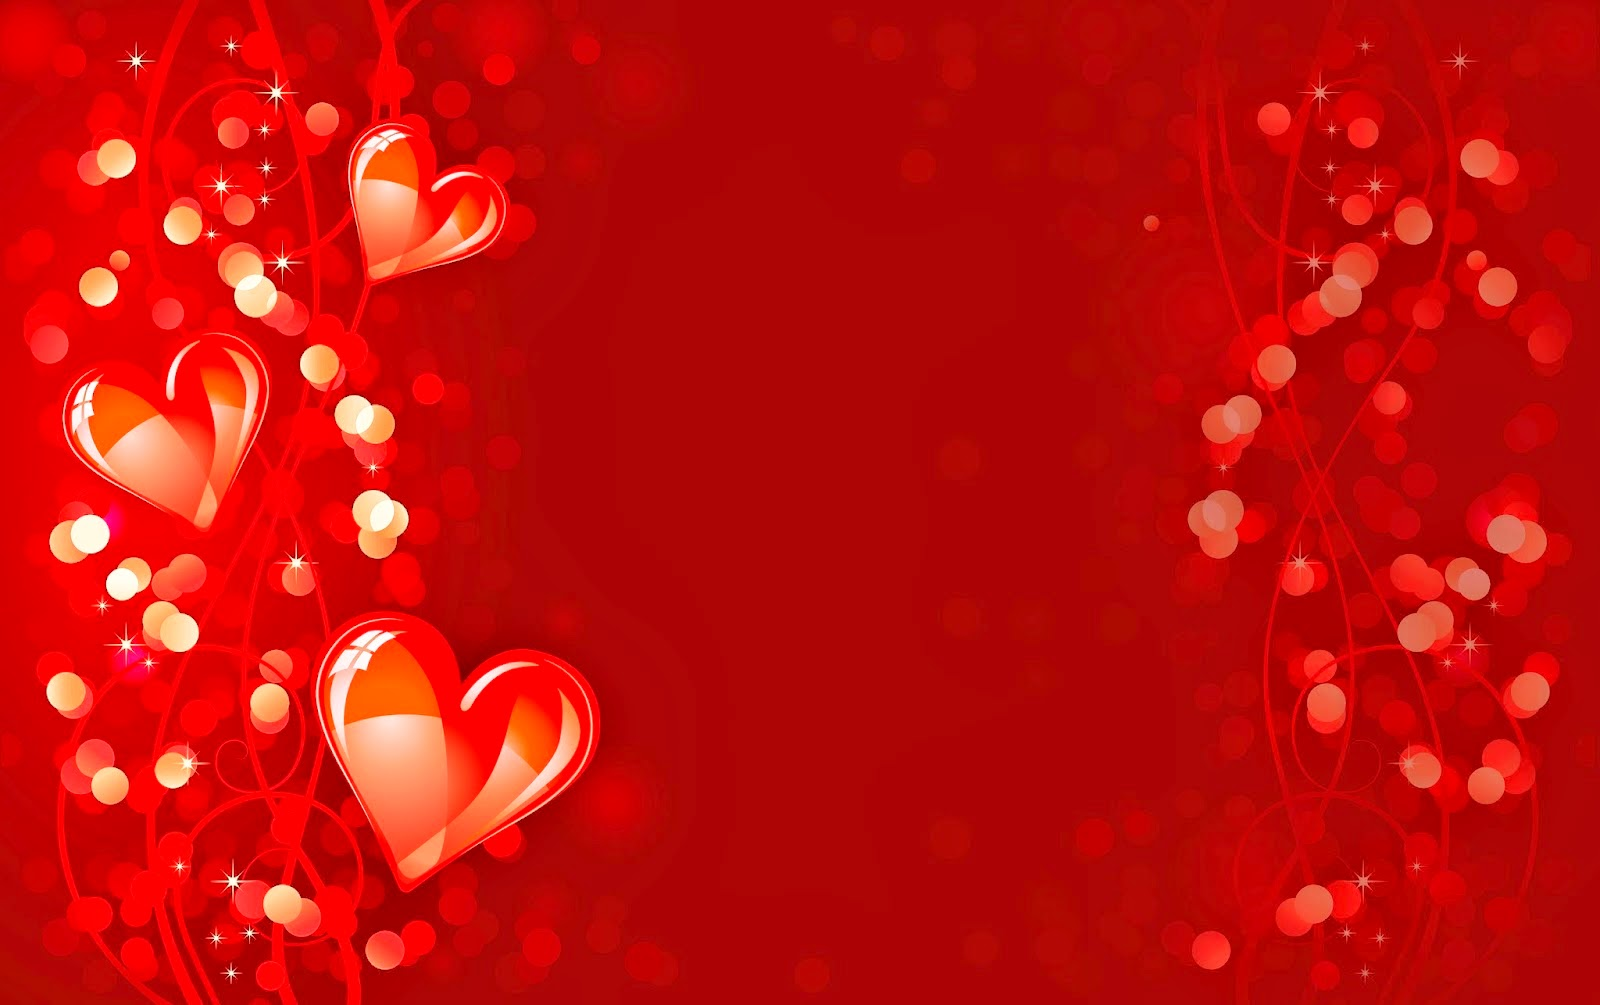 Love Wallpapers And Status : Love Wallpaper Background Images for Whatsapp - Whatsapp ...